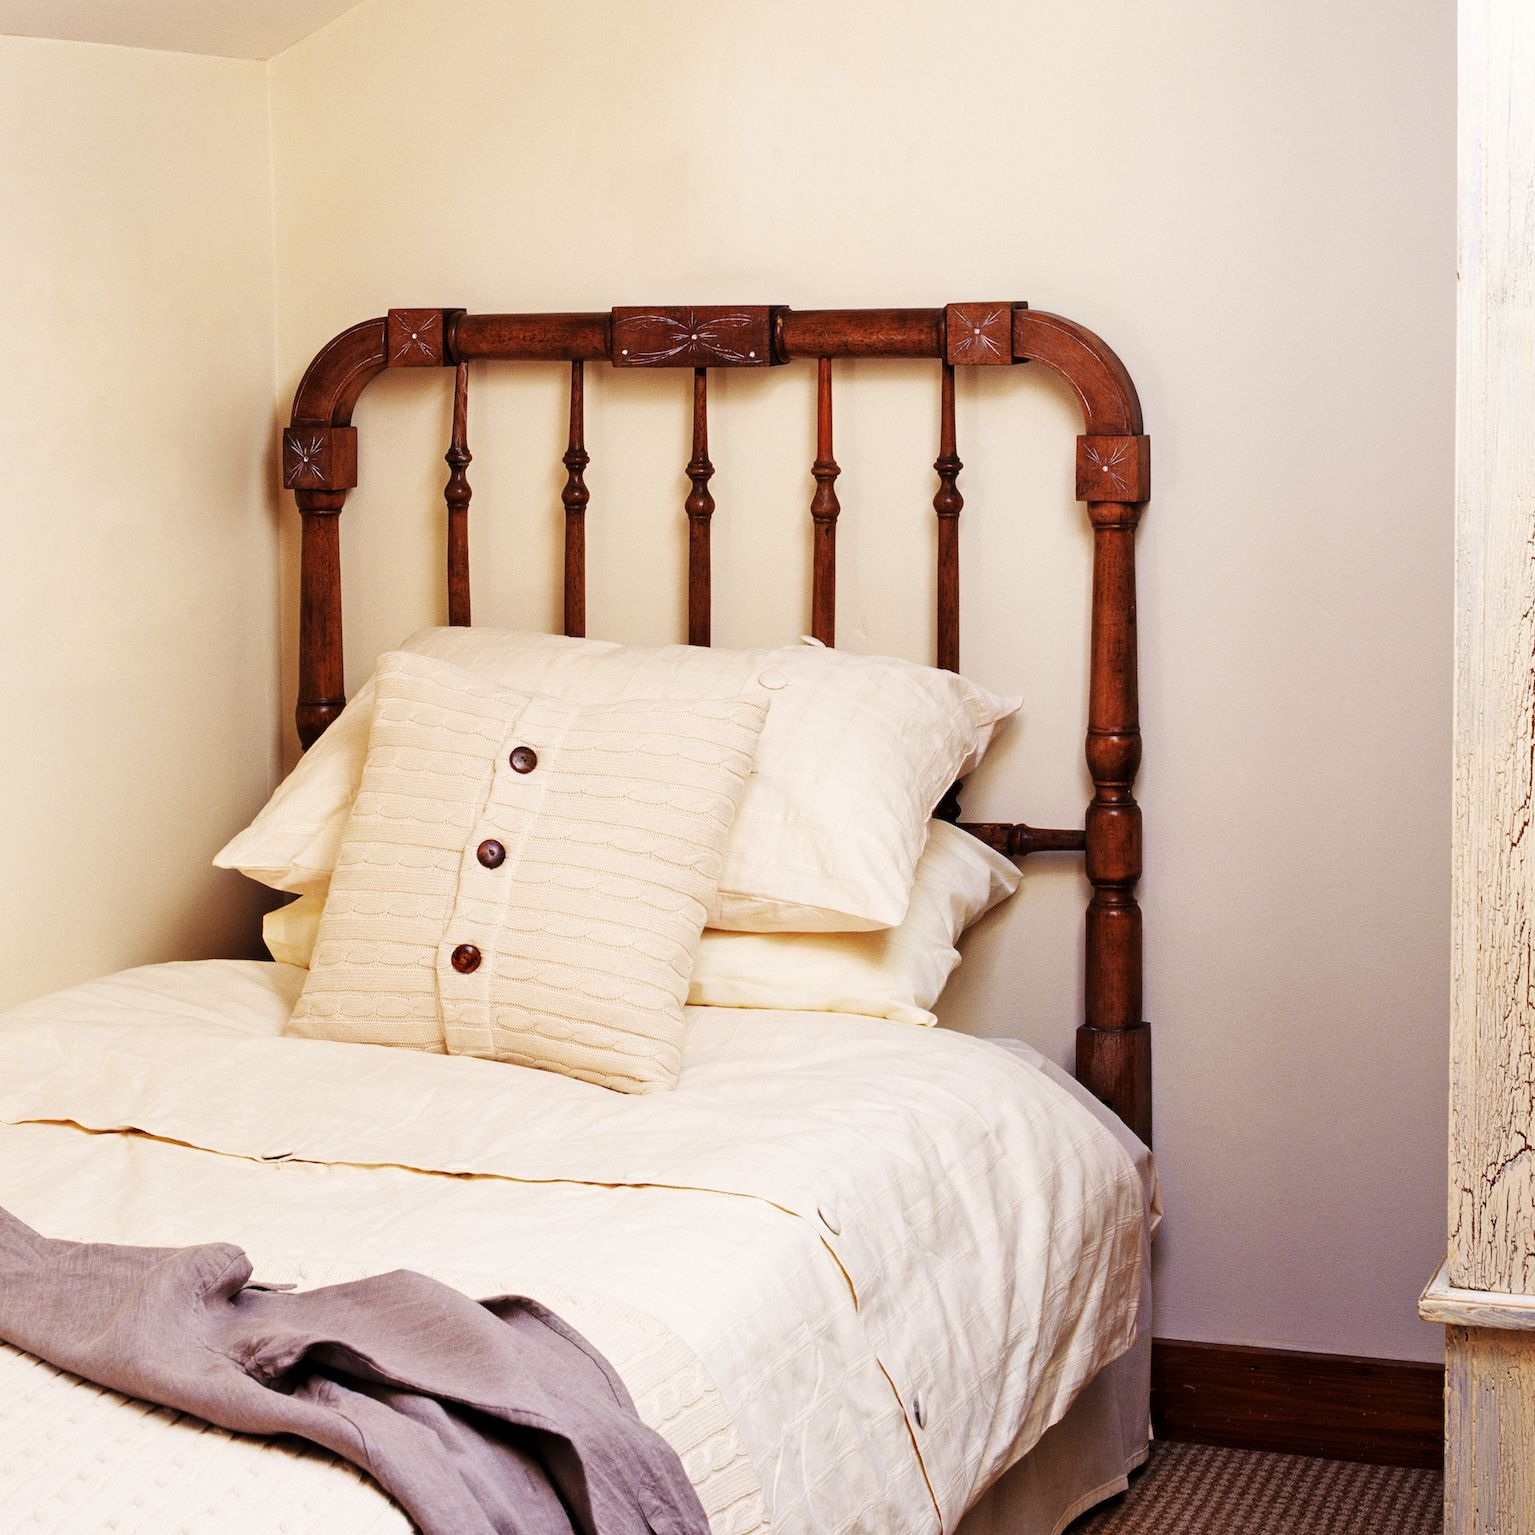 Feng Shui Tips For A Bed Placed Against A Wall